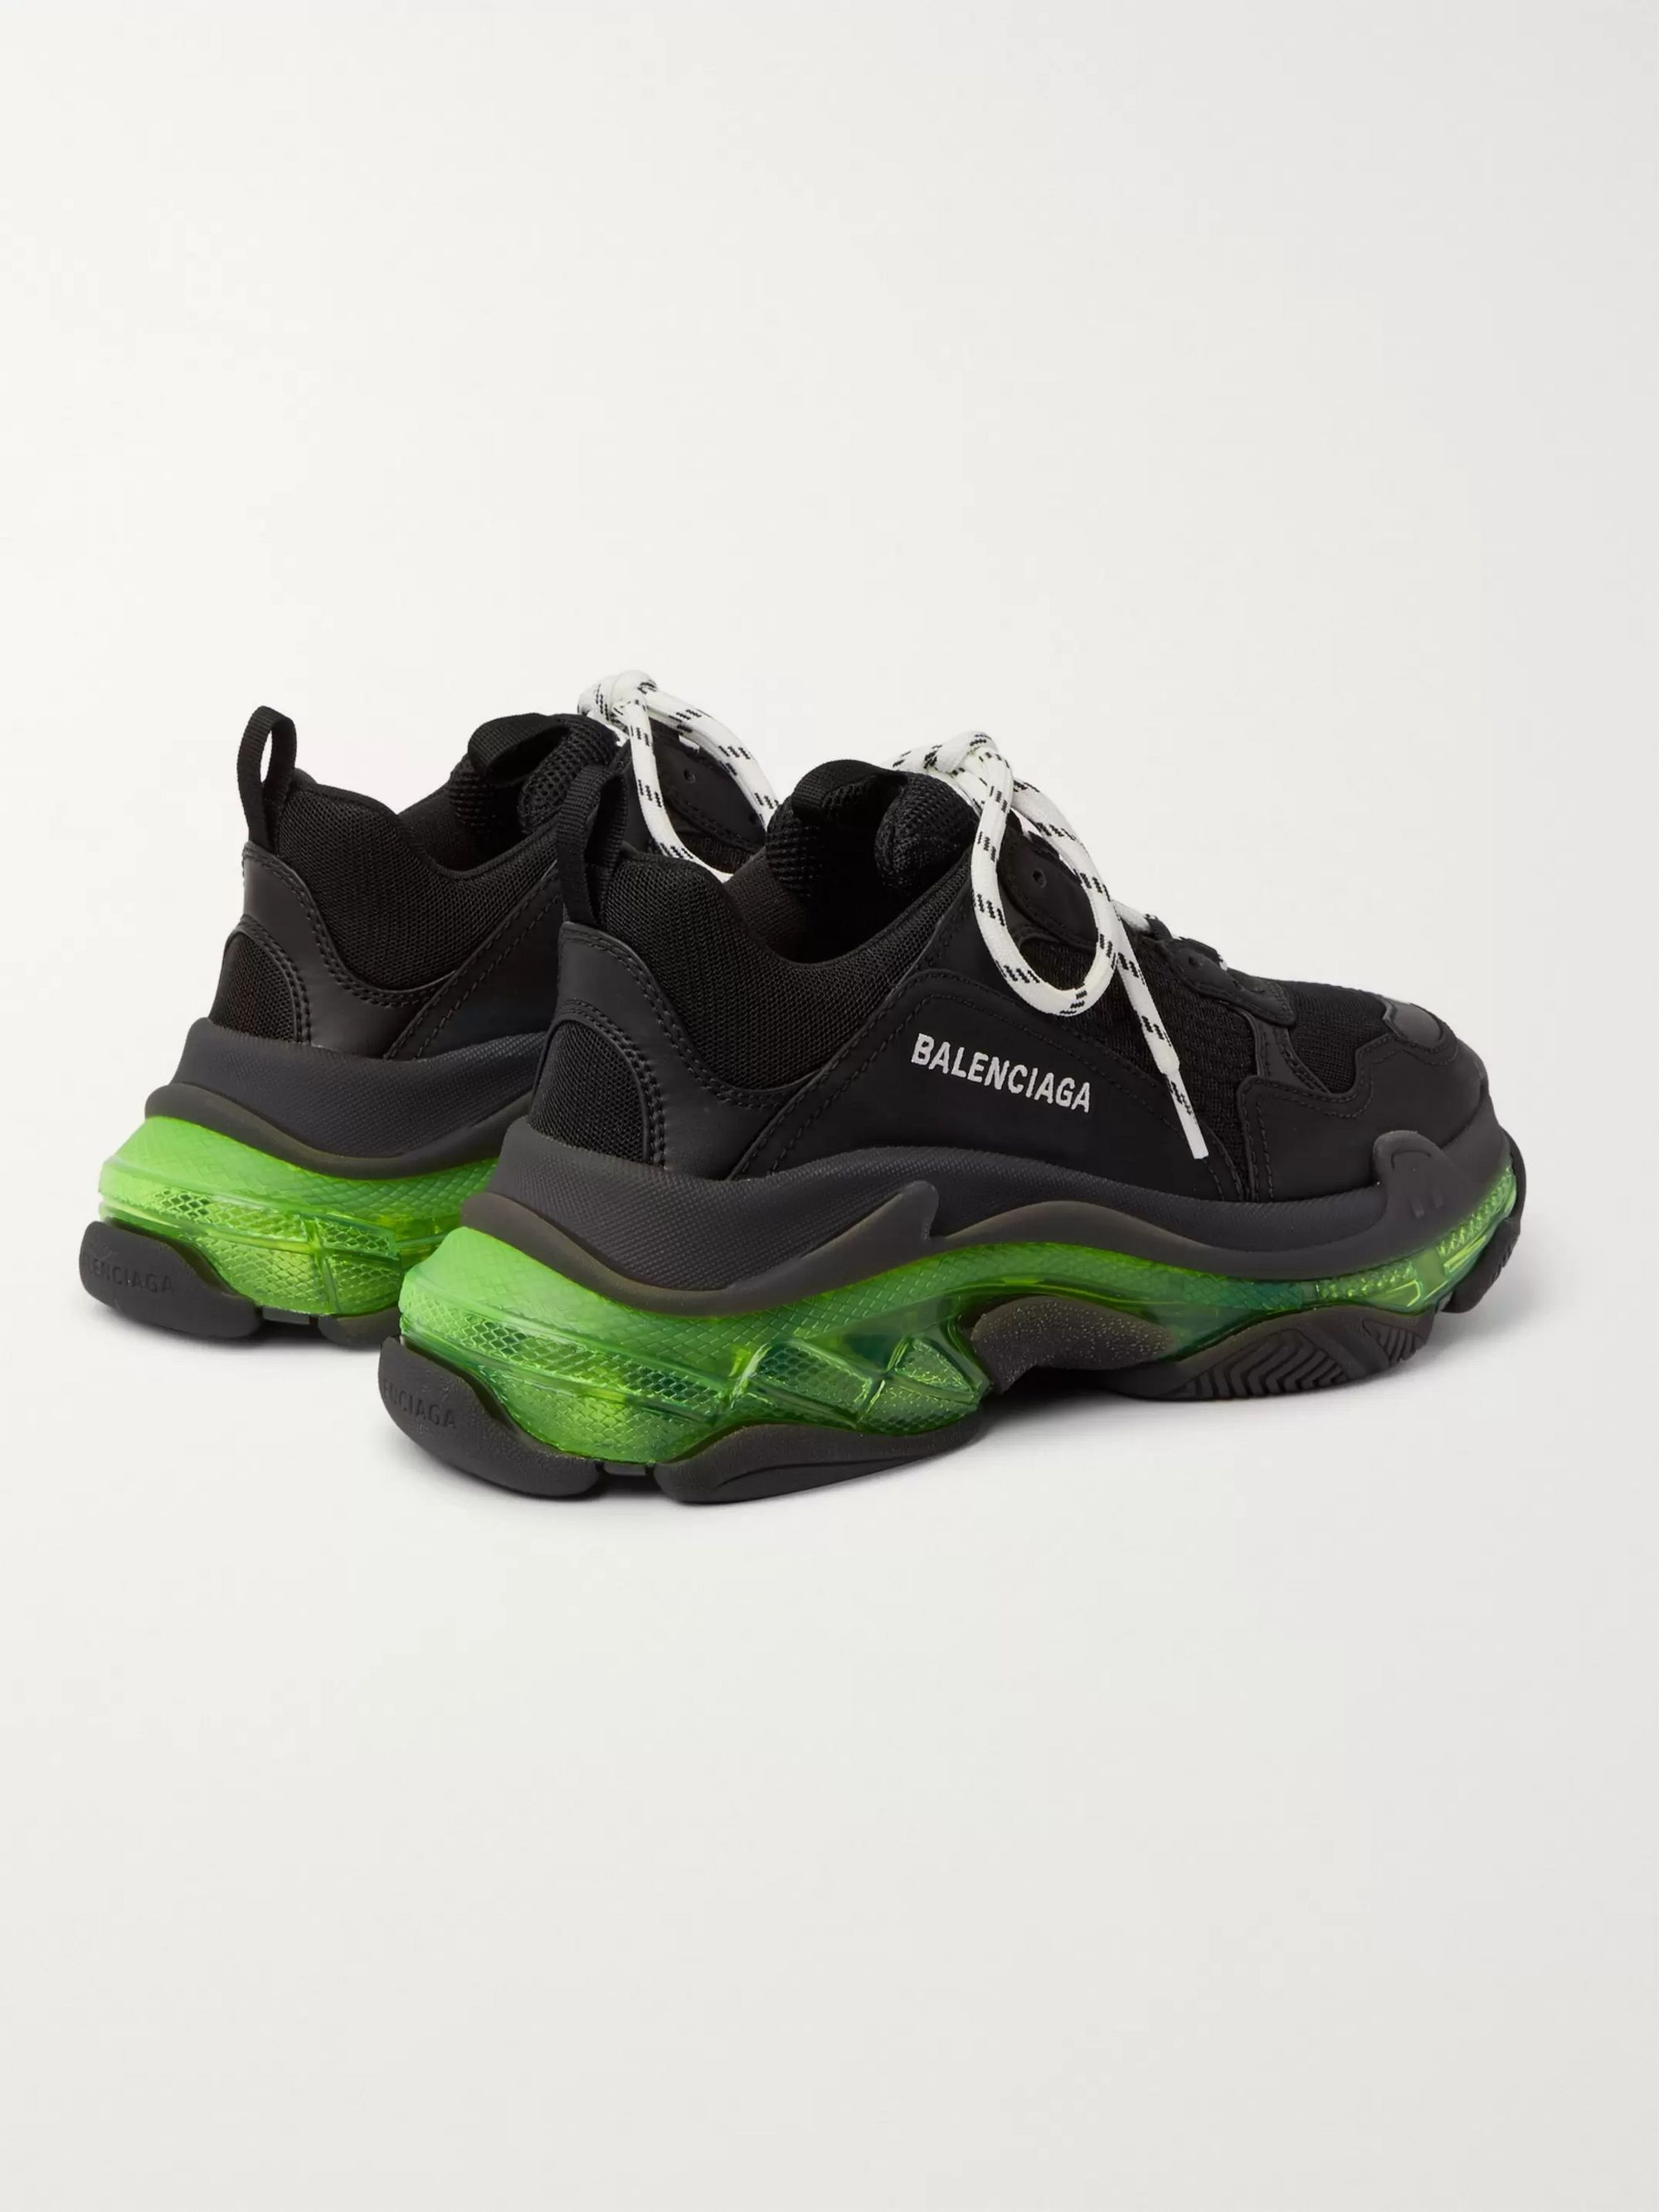 Balenciaga Triple S Clear Sole Mesh Sneakers